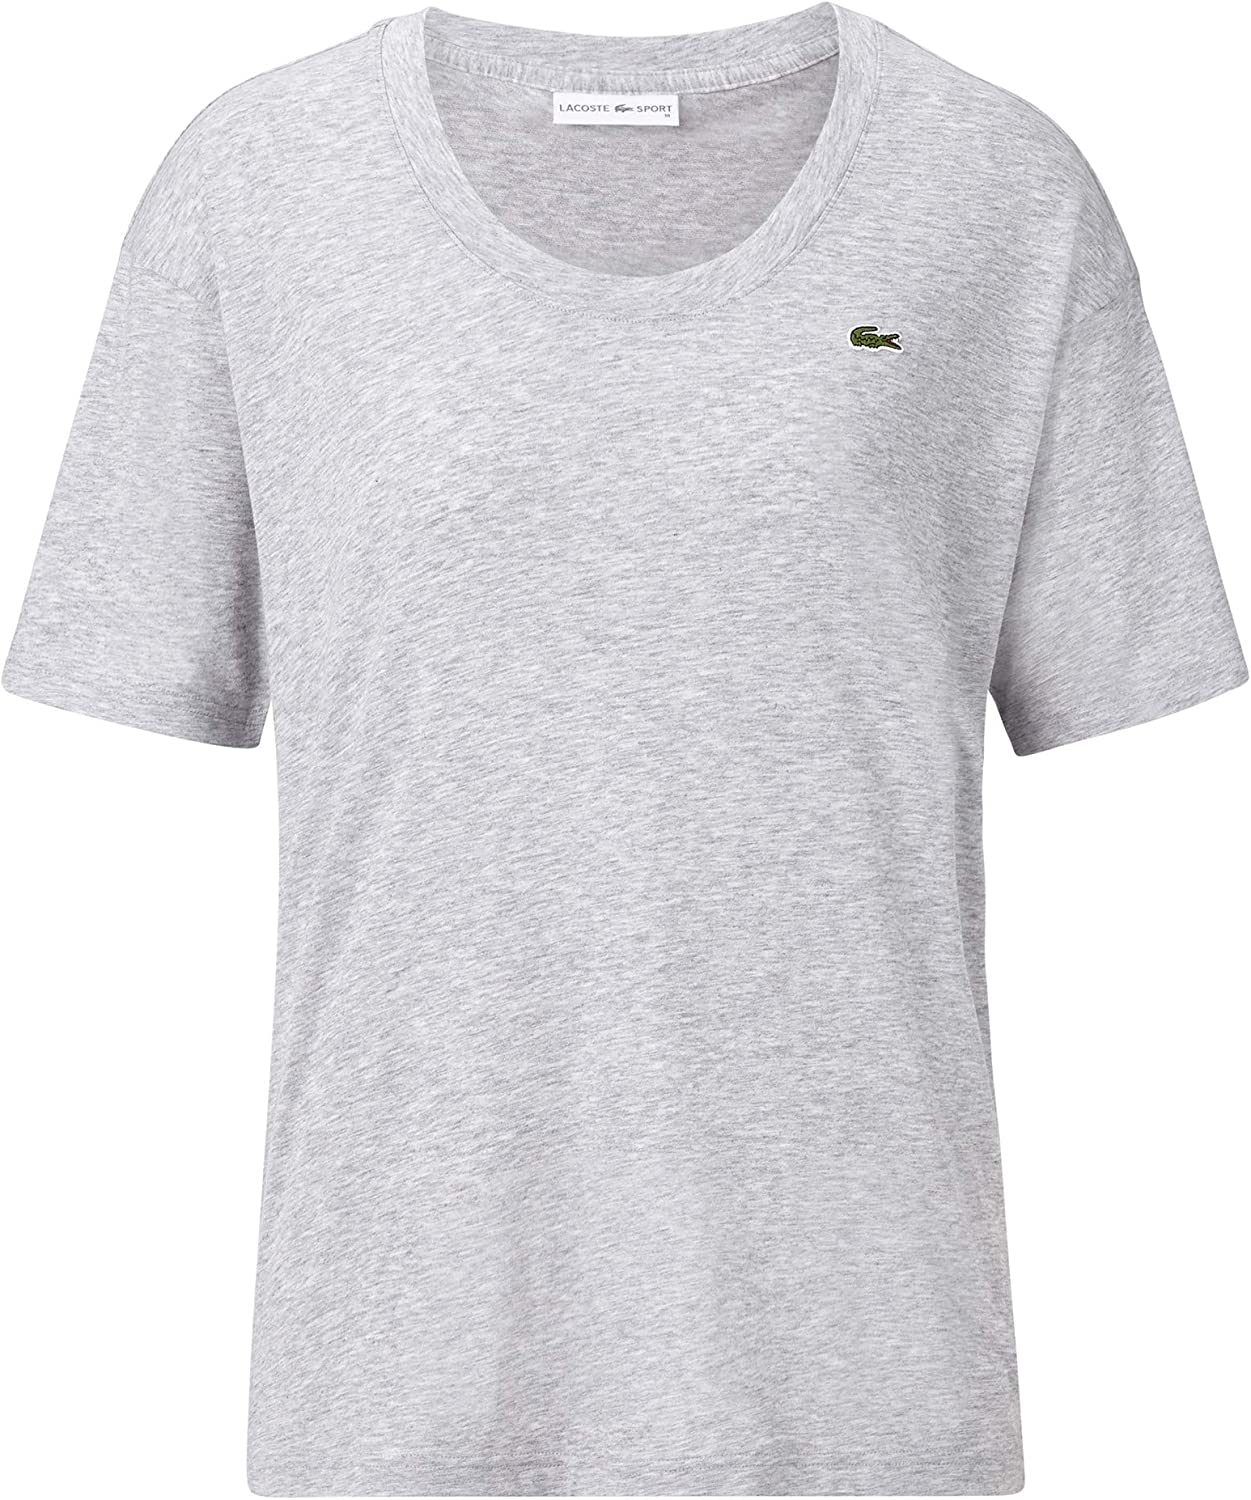 Lacoste TF3407 Women T-Shirt Round Neck,Ladies Basic Tshirt,Tee,Regular Fit